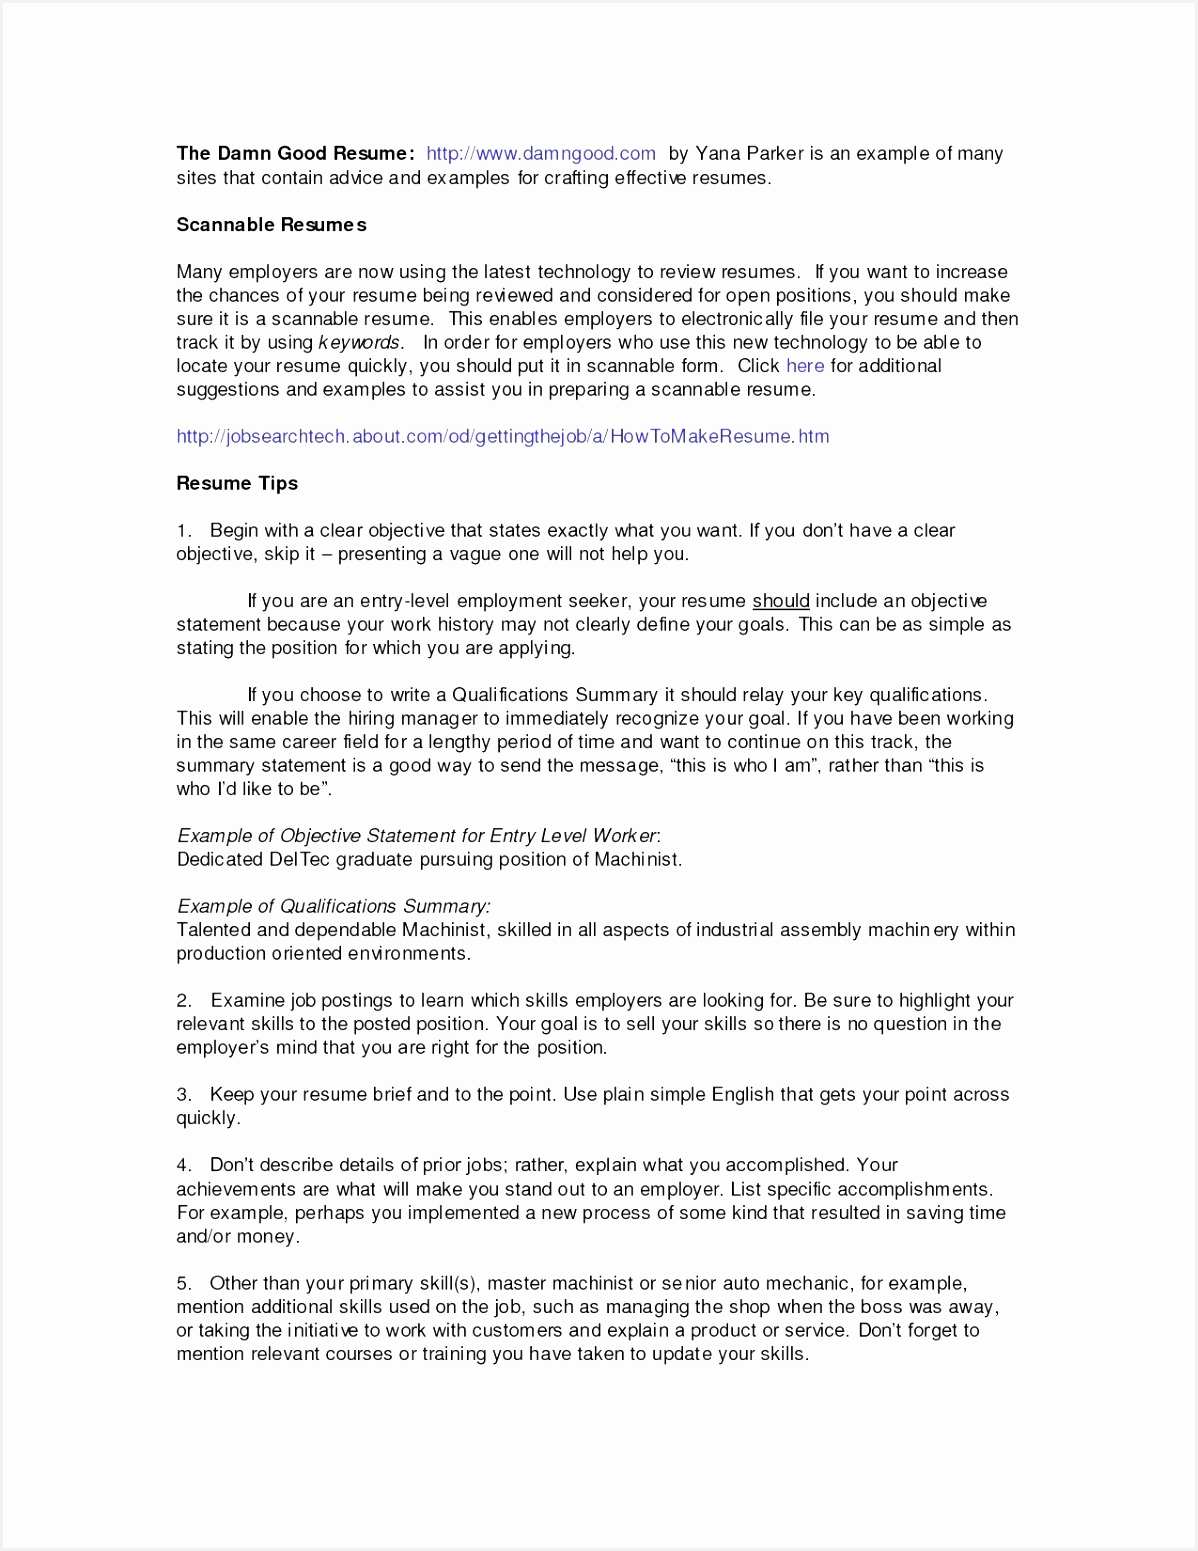 Resume for Construction Worker Lovely Sample Resume for Warehouse Worker Samples155111985odlt